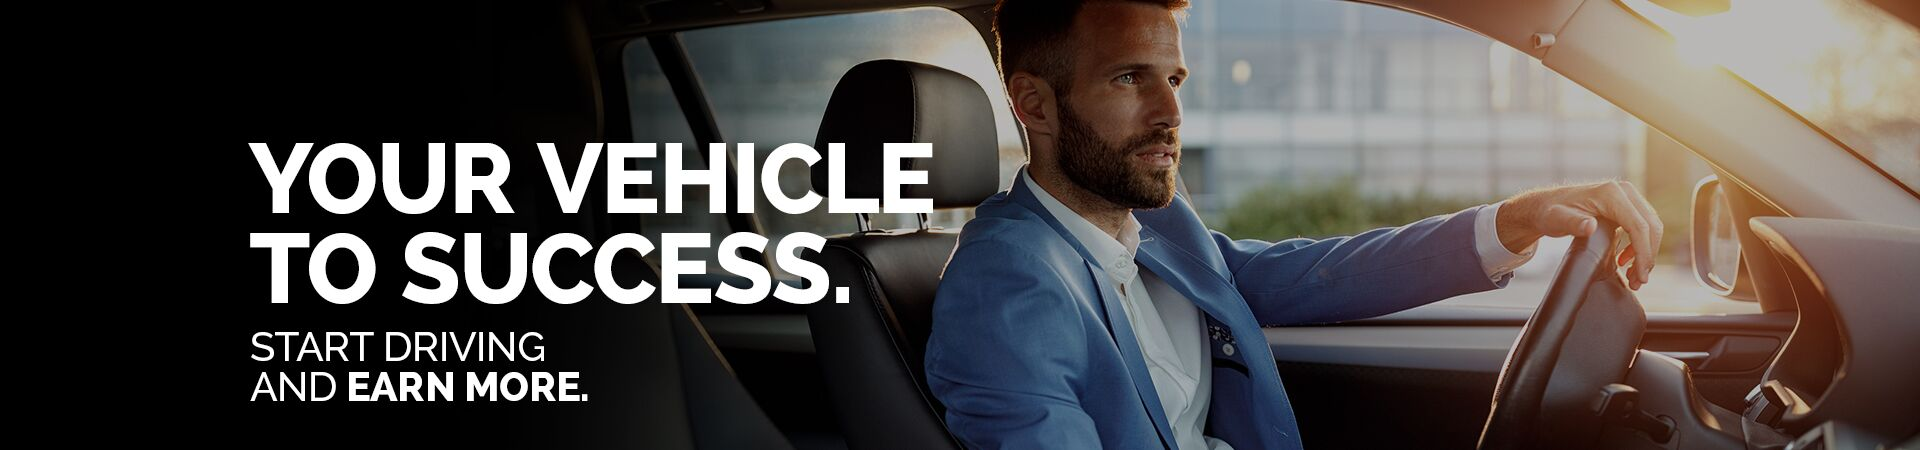 Your Vehicle to Success Awaits at New York Livery Leasing